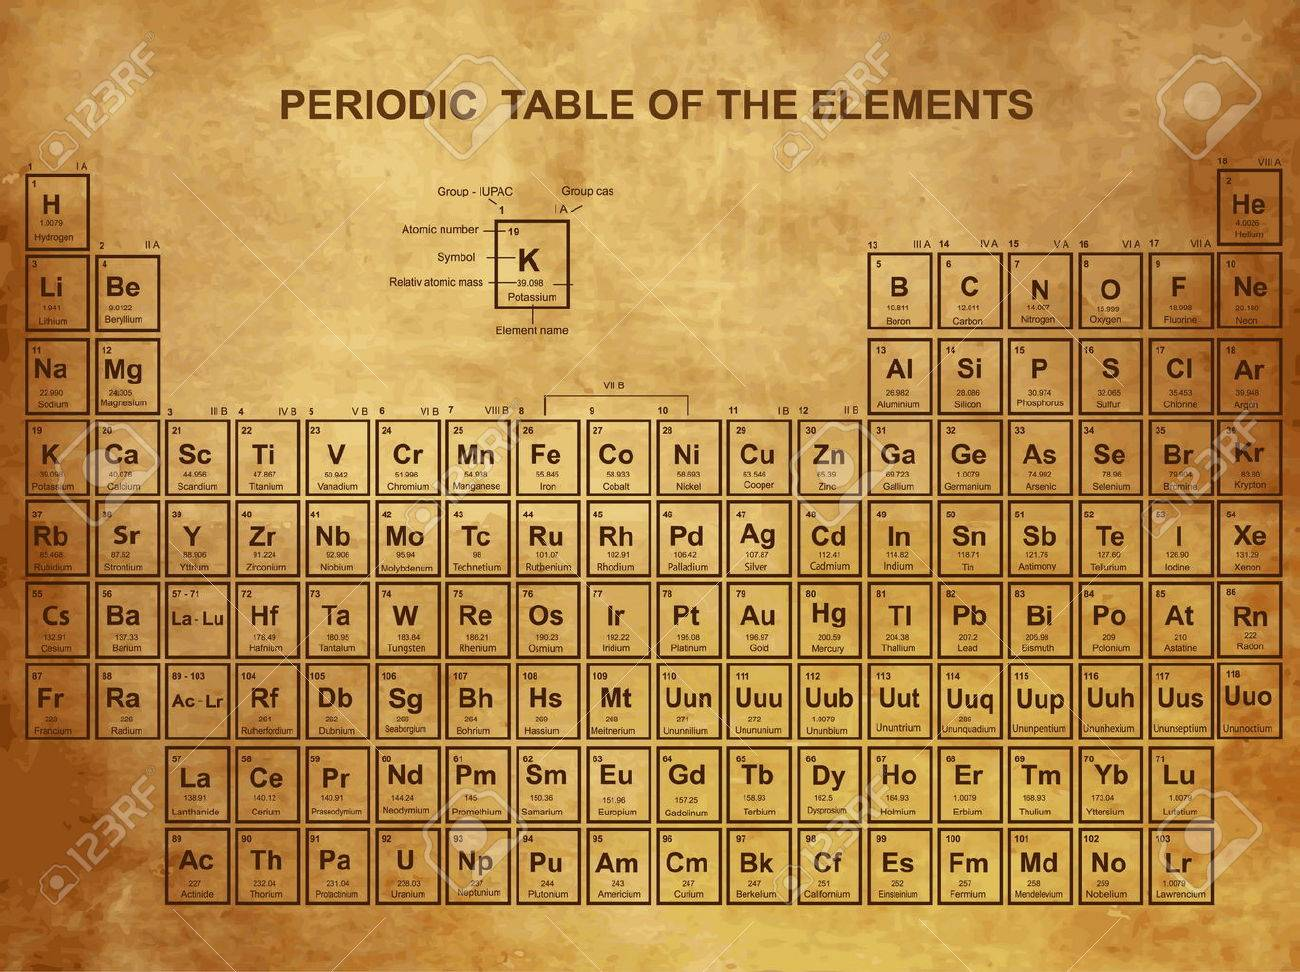 The minecraft periodic table image collections periodic table images the minecraft periodic table images periodic table images minecraft periodic table explained images periodic table images gamestrikefo Choice Image